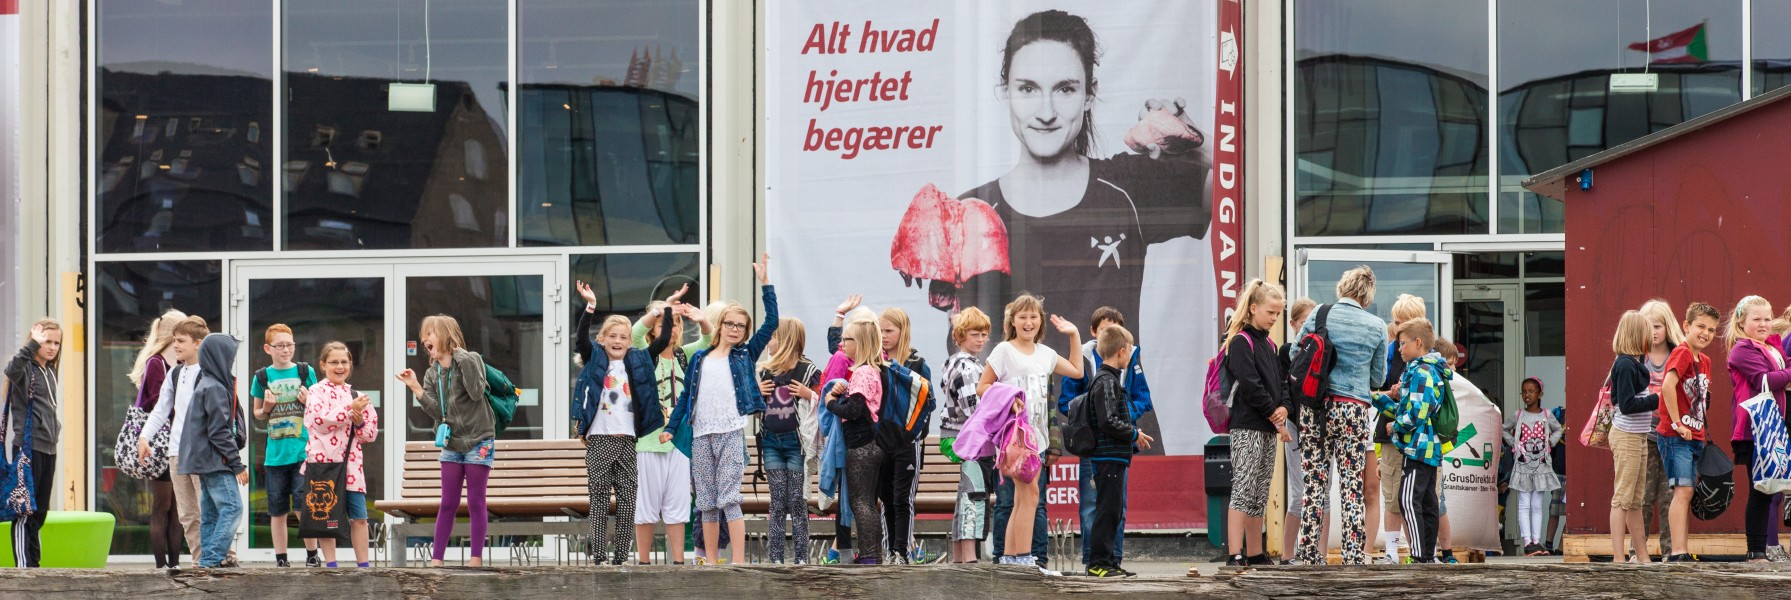 kids in Copenhagen, Denmark, June 2014, picture 75